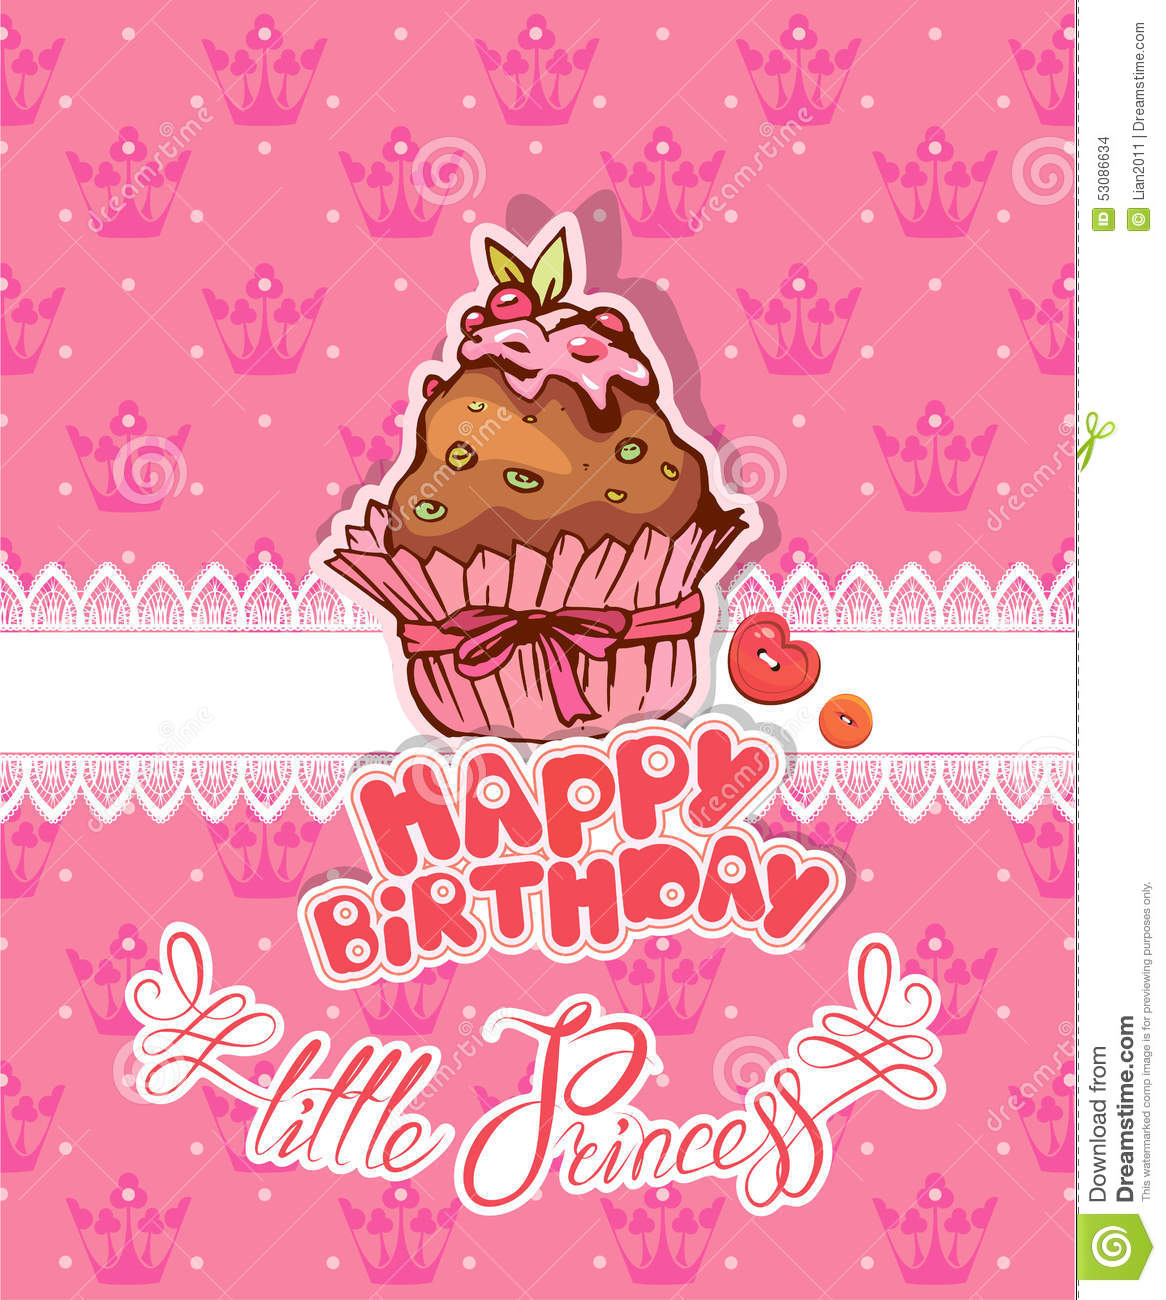 Happy Birthday Little Princess Holiday Card For Girl – Happy Birthday Card for Little Girl